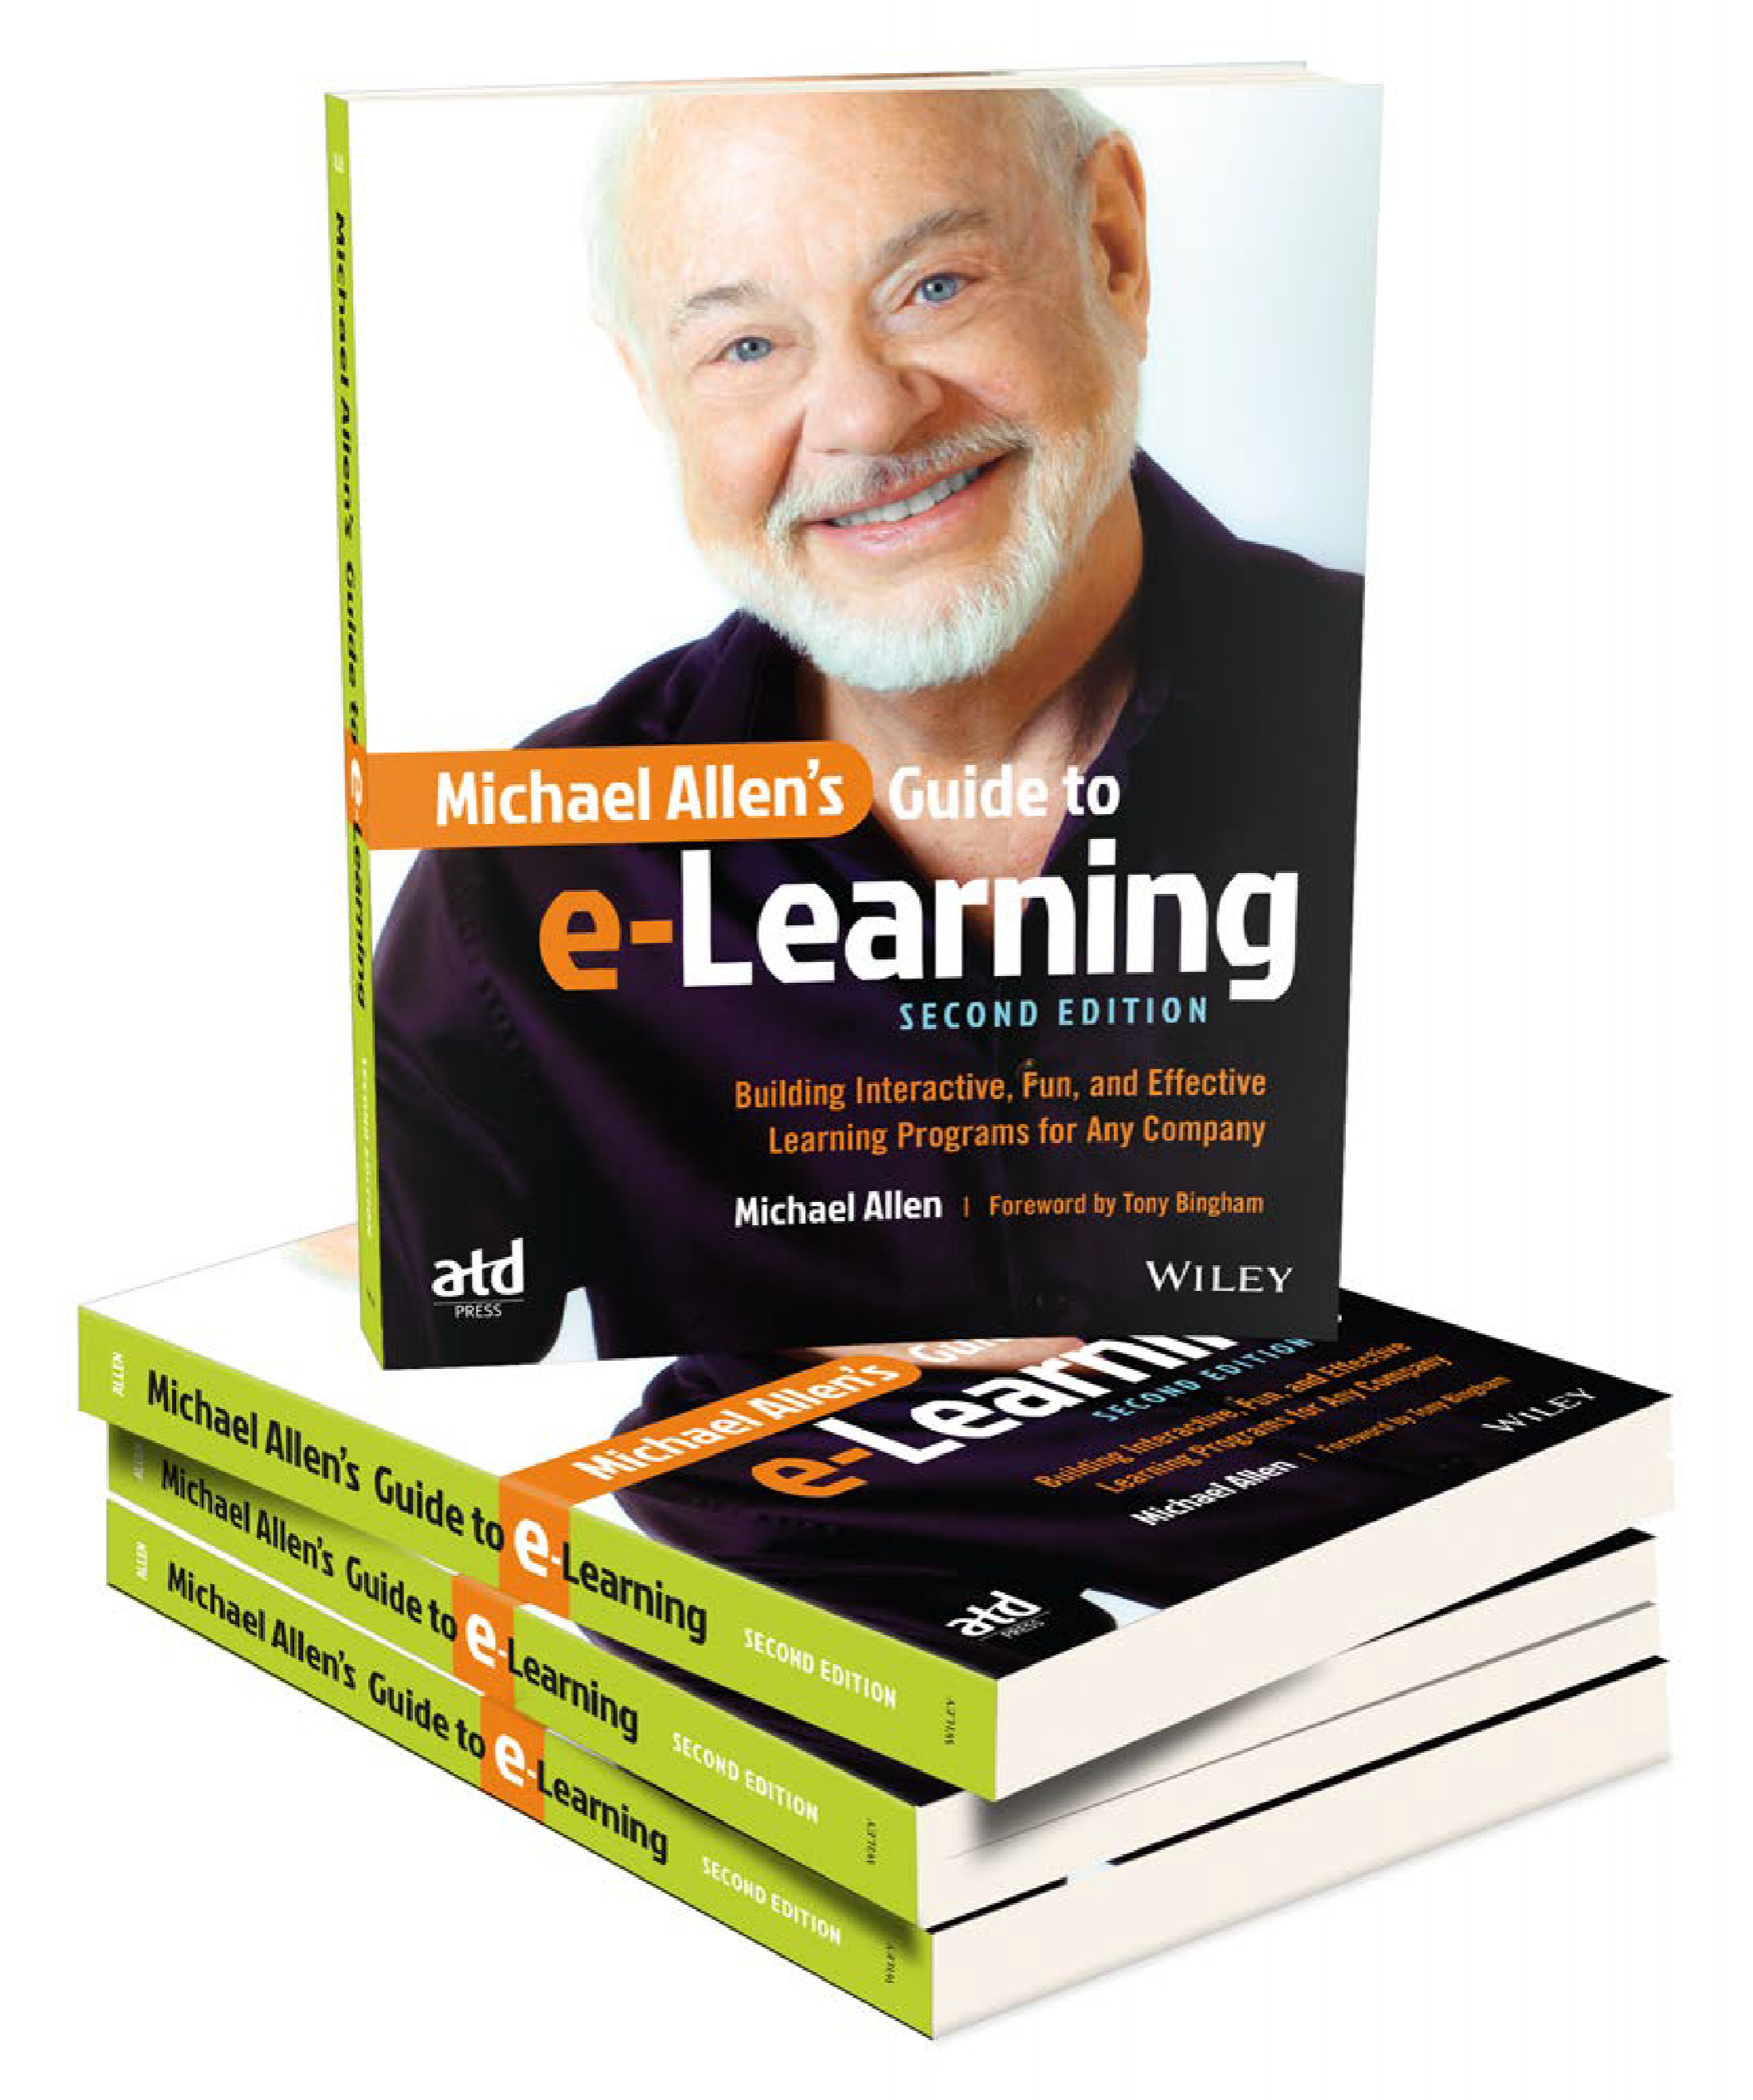 Guide-to-eLearning-2nd-edition-3D-Image-Stack-Books-008020-edited.png